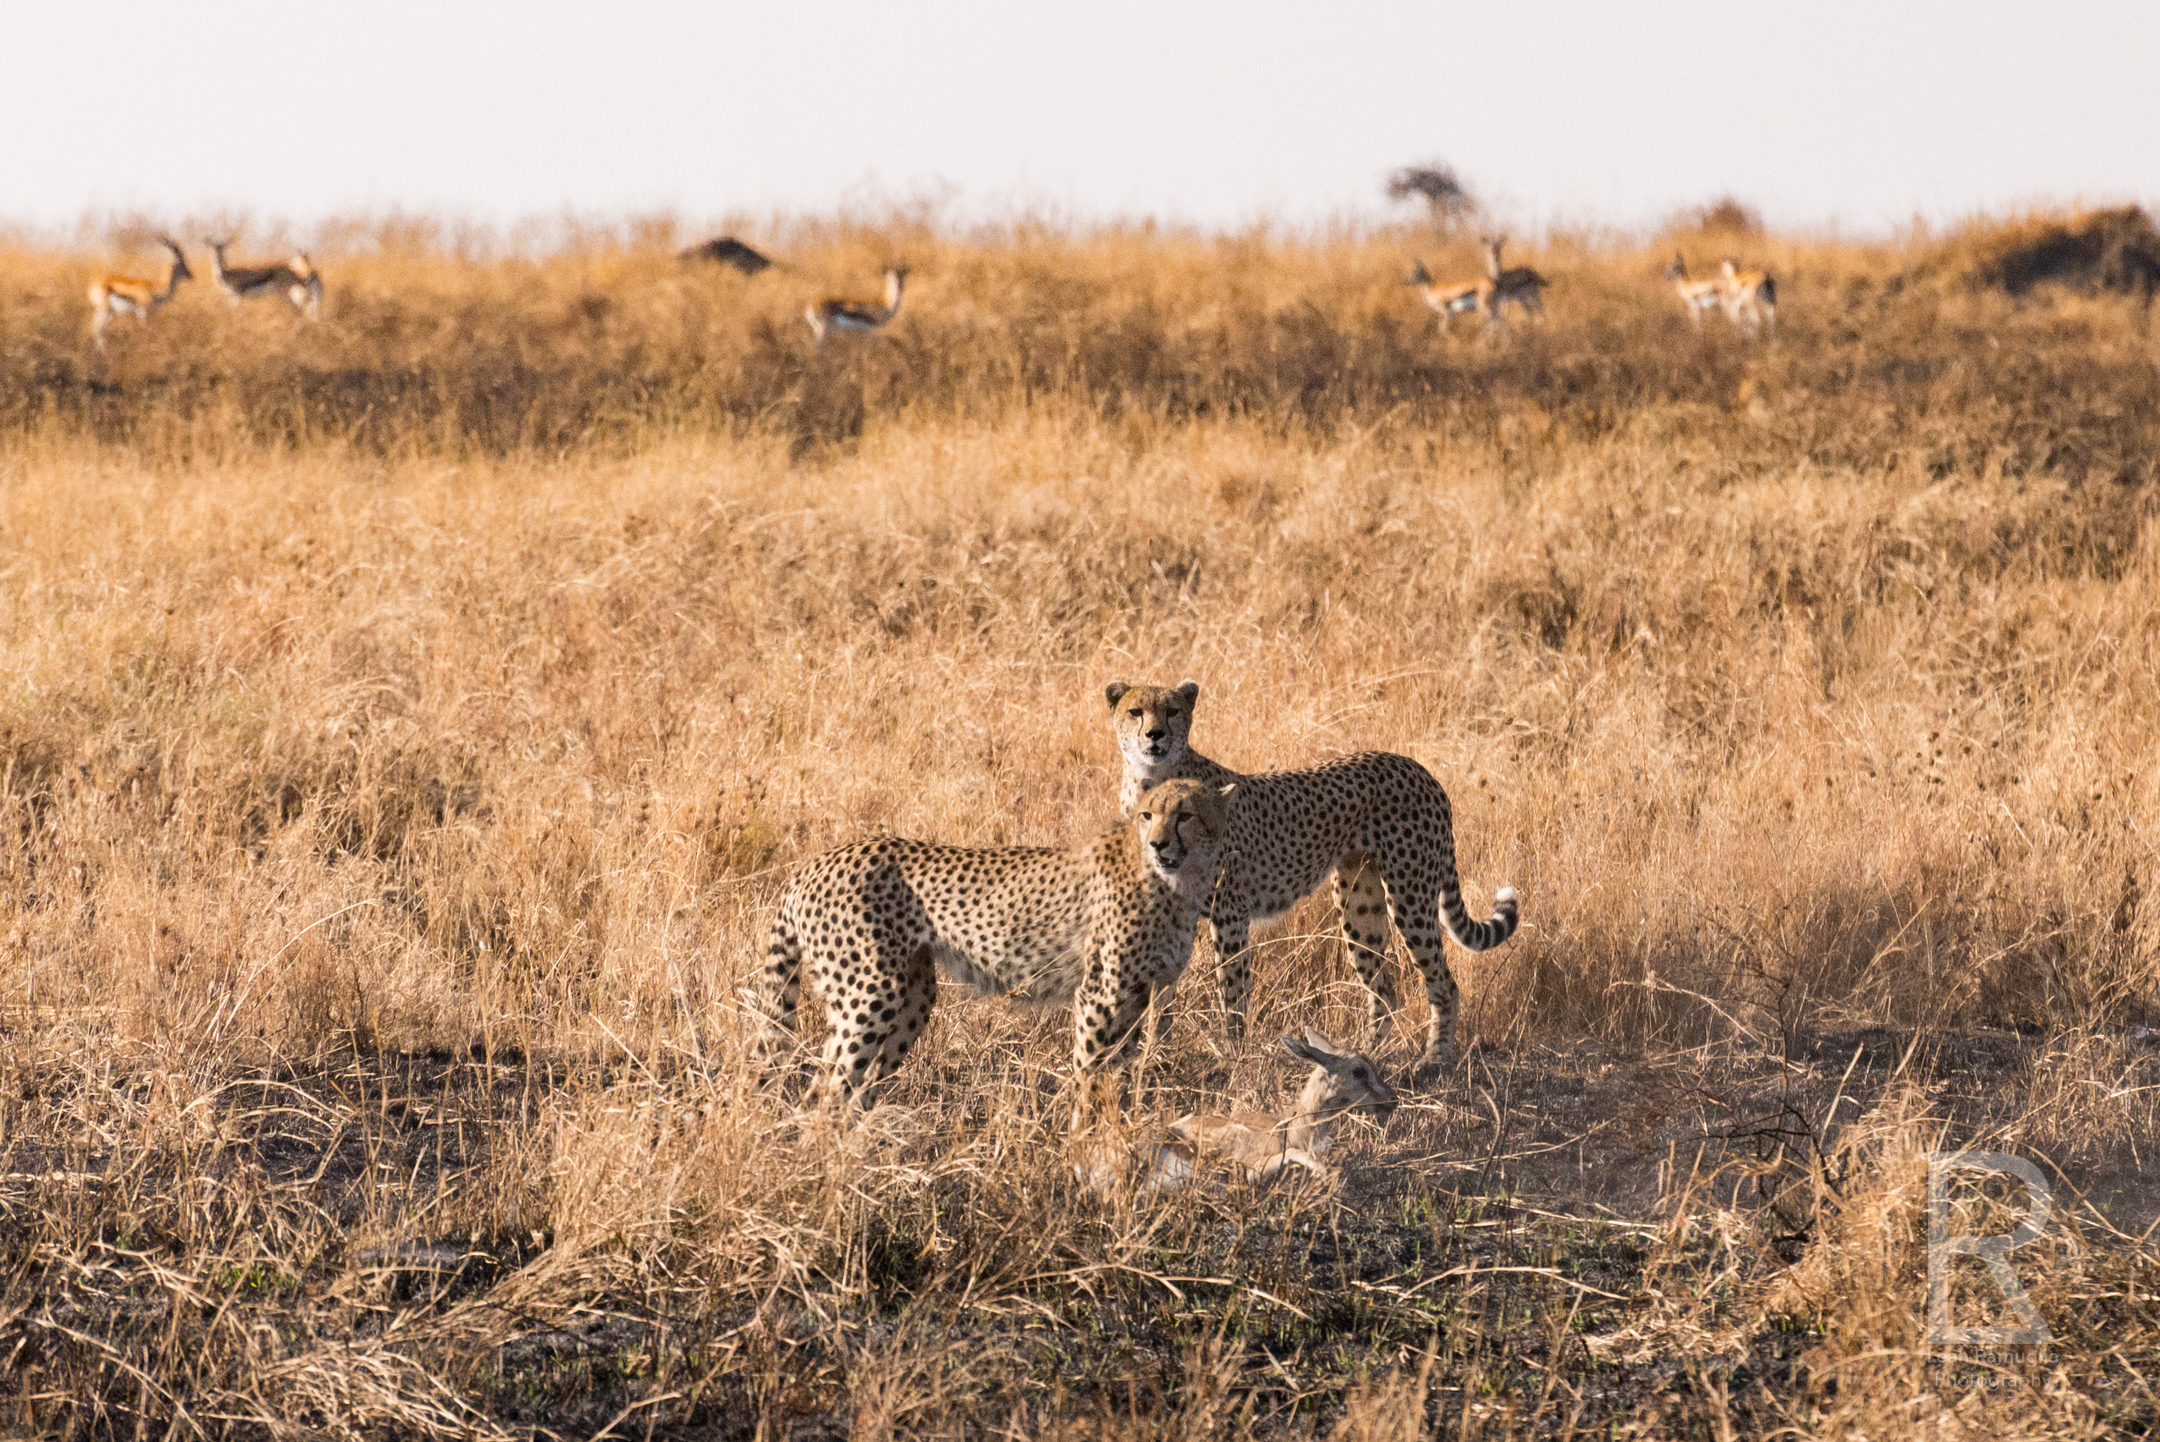 - Our Tanzanian guide watched closely and began taking photos of his own. This wasn't a normal hunt he explained, because there were two cheetahs, and cheetahs are solitary cats. He pointed out that the gazelle had been caught, but the cheetah didn't kill it yet. The mother was teaching her cub how to hunt.